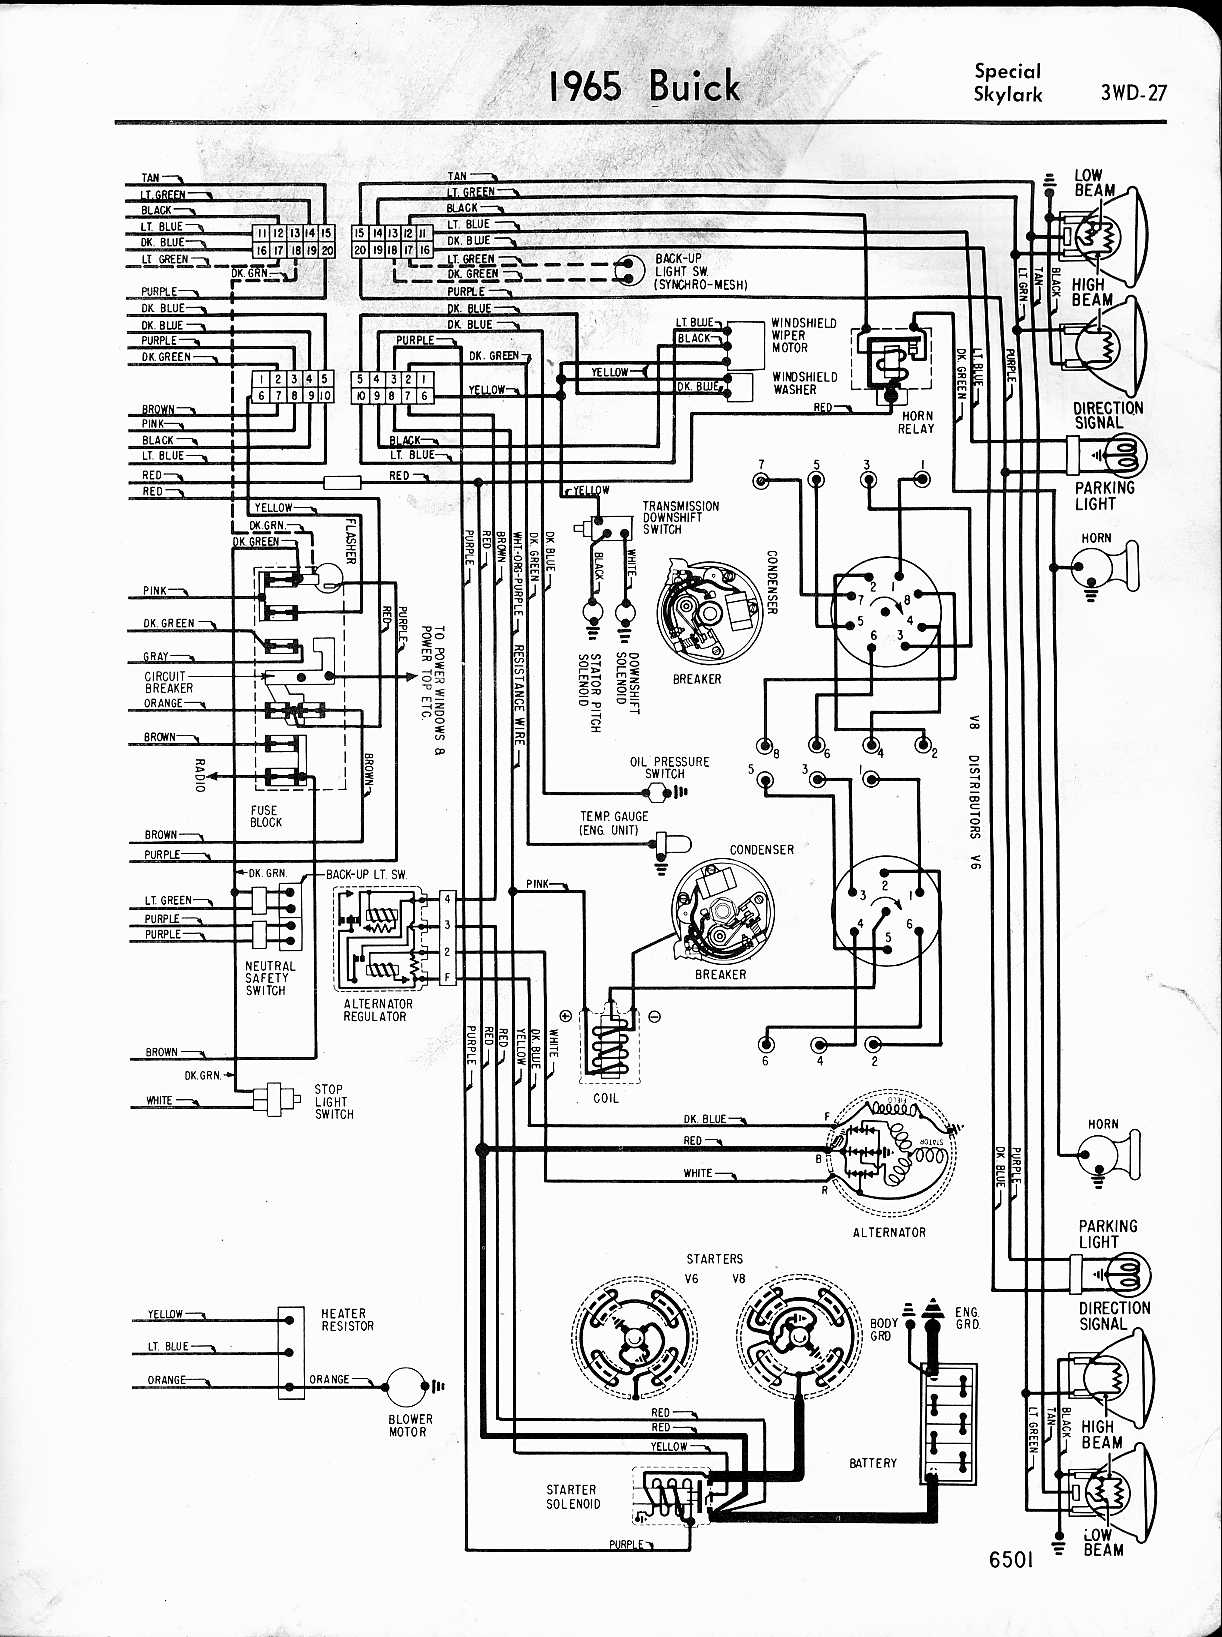 1964 Skylark Wiring Diagram - Wiring Diagram Data